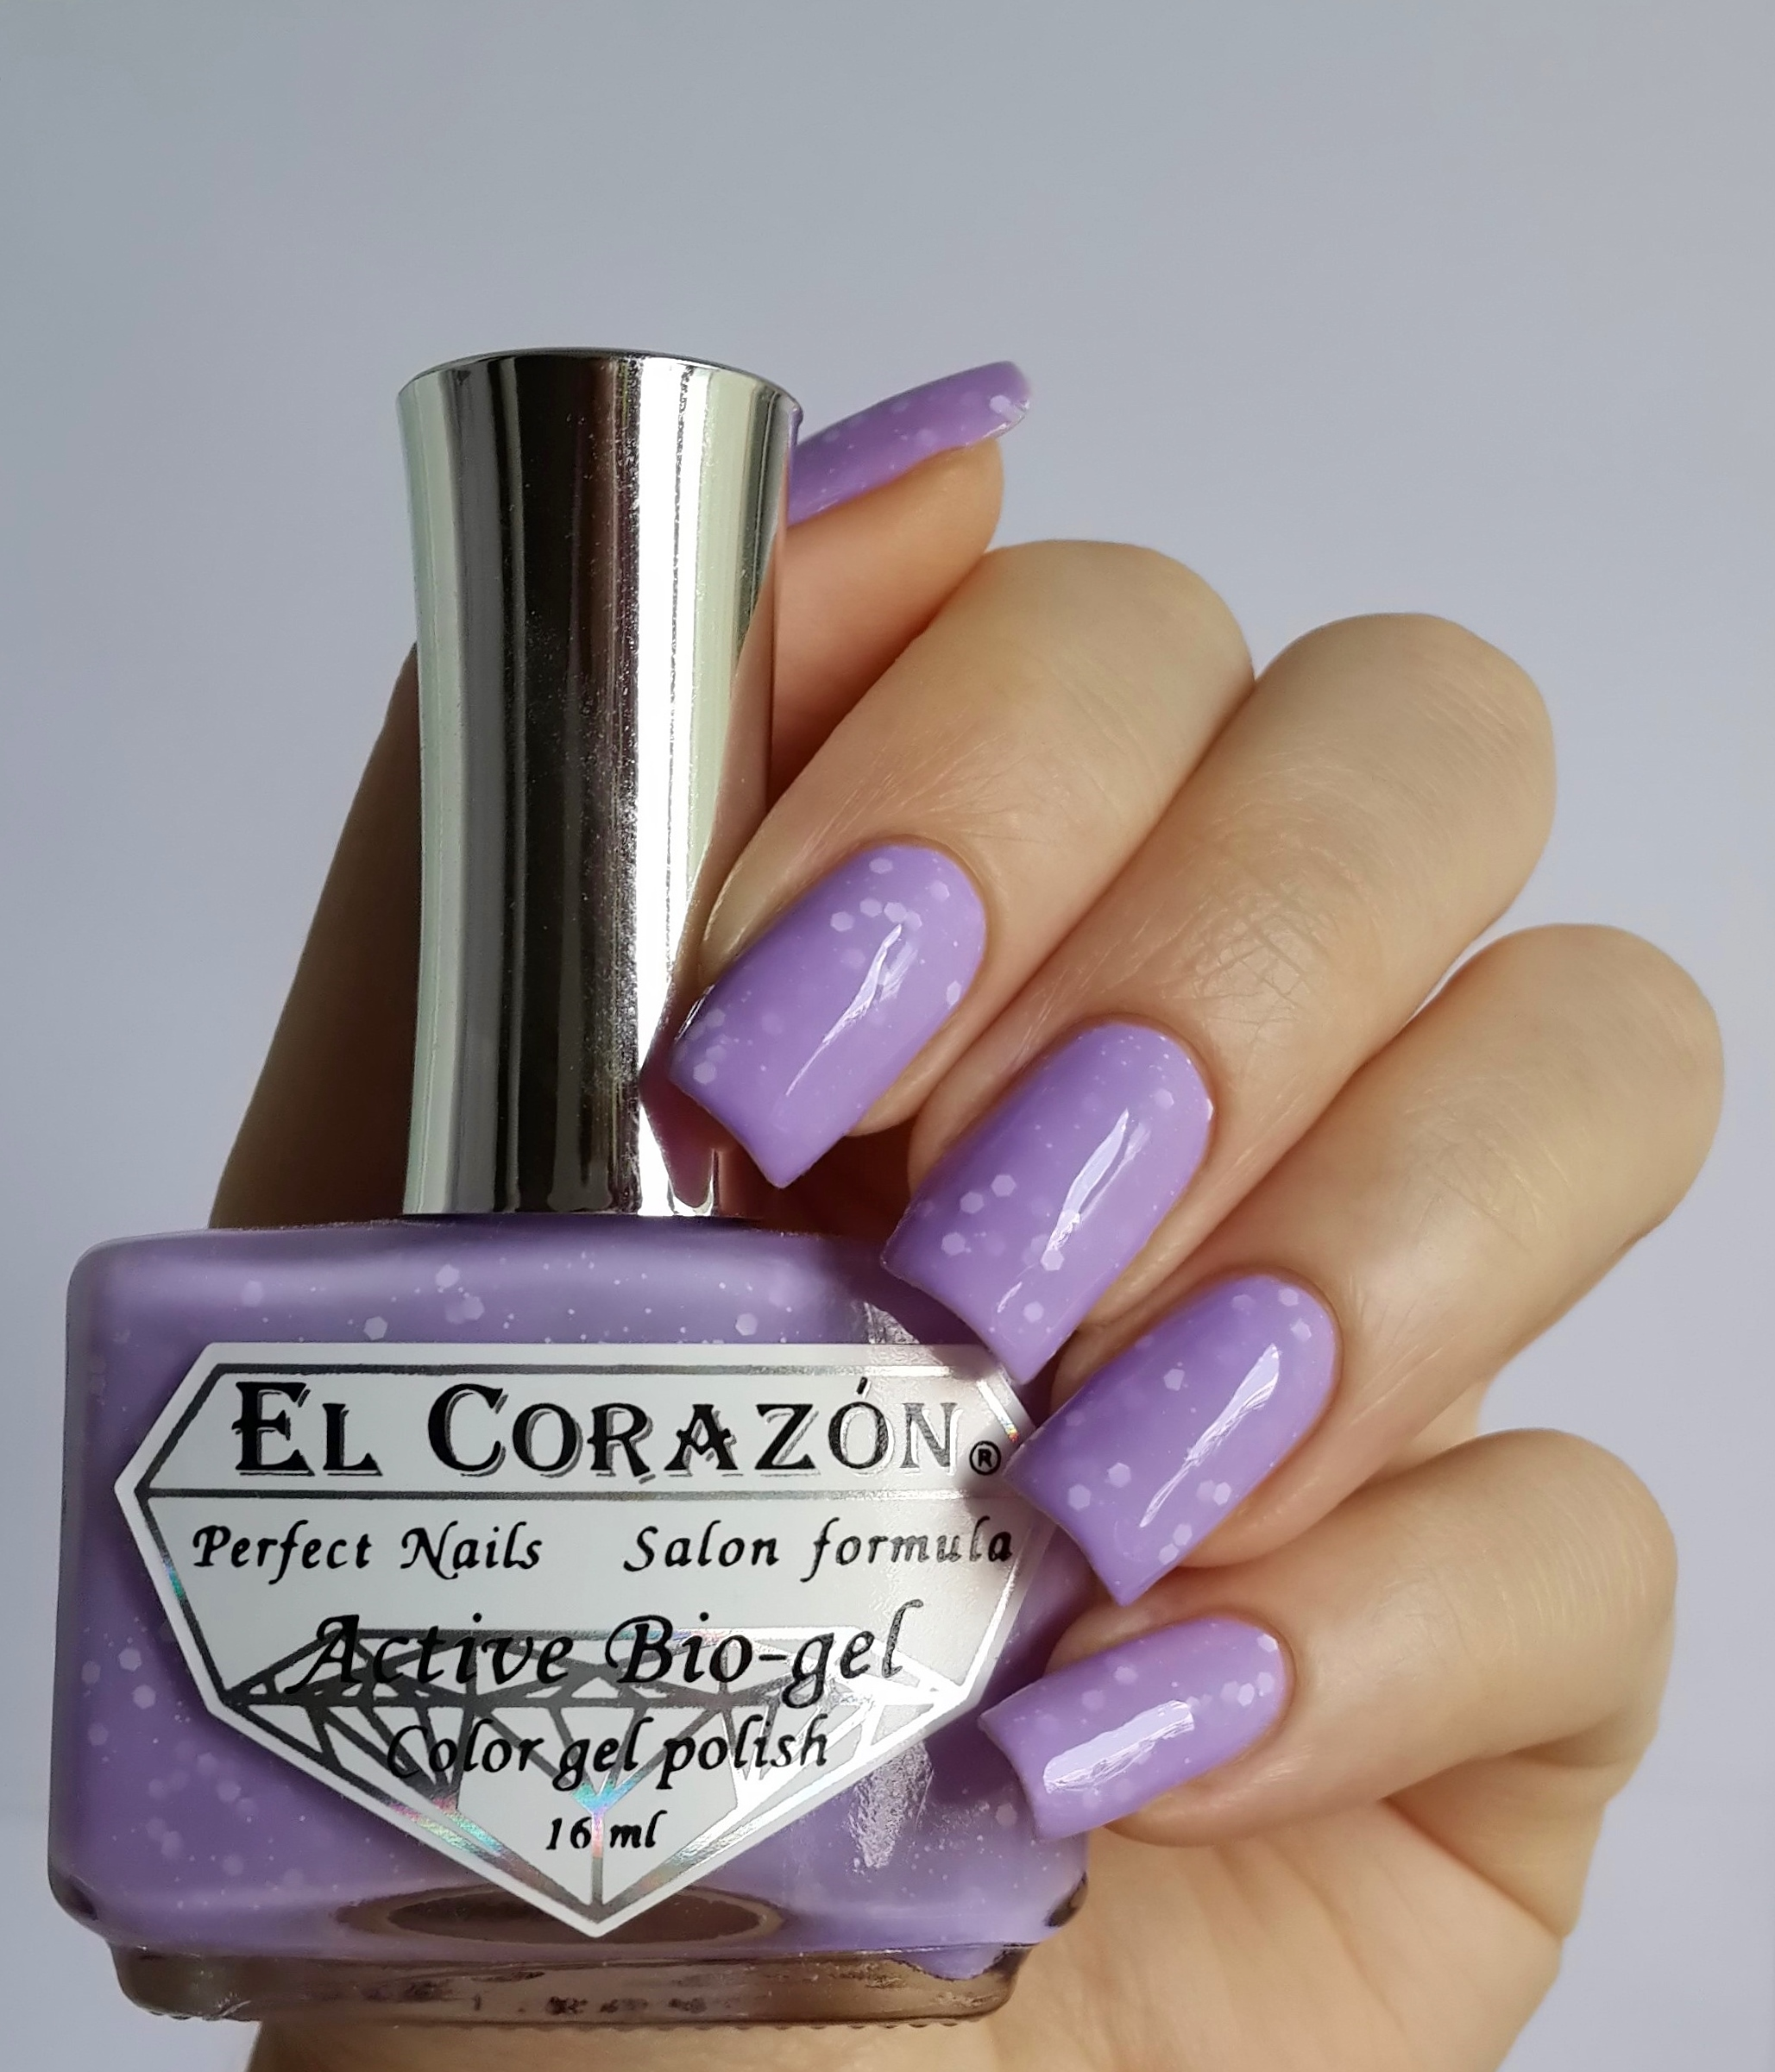 EL Corazon Active Bio-gel Color gel polish Fashion girl on shopping №423/205